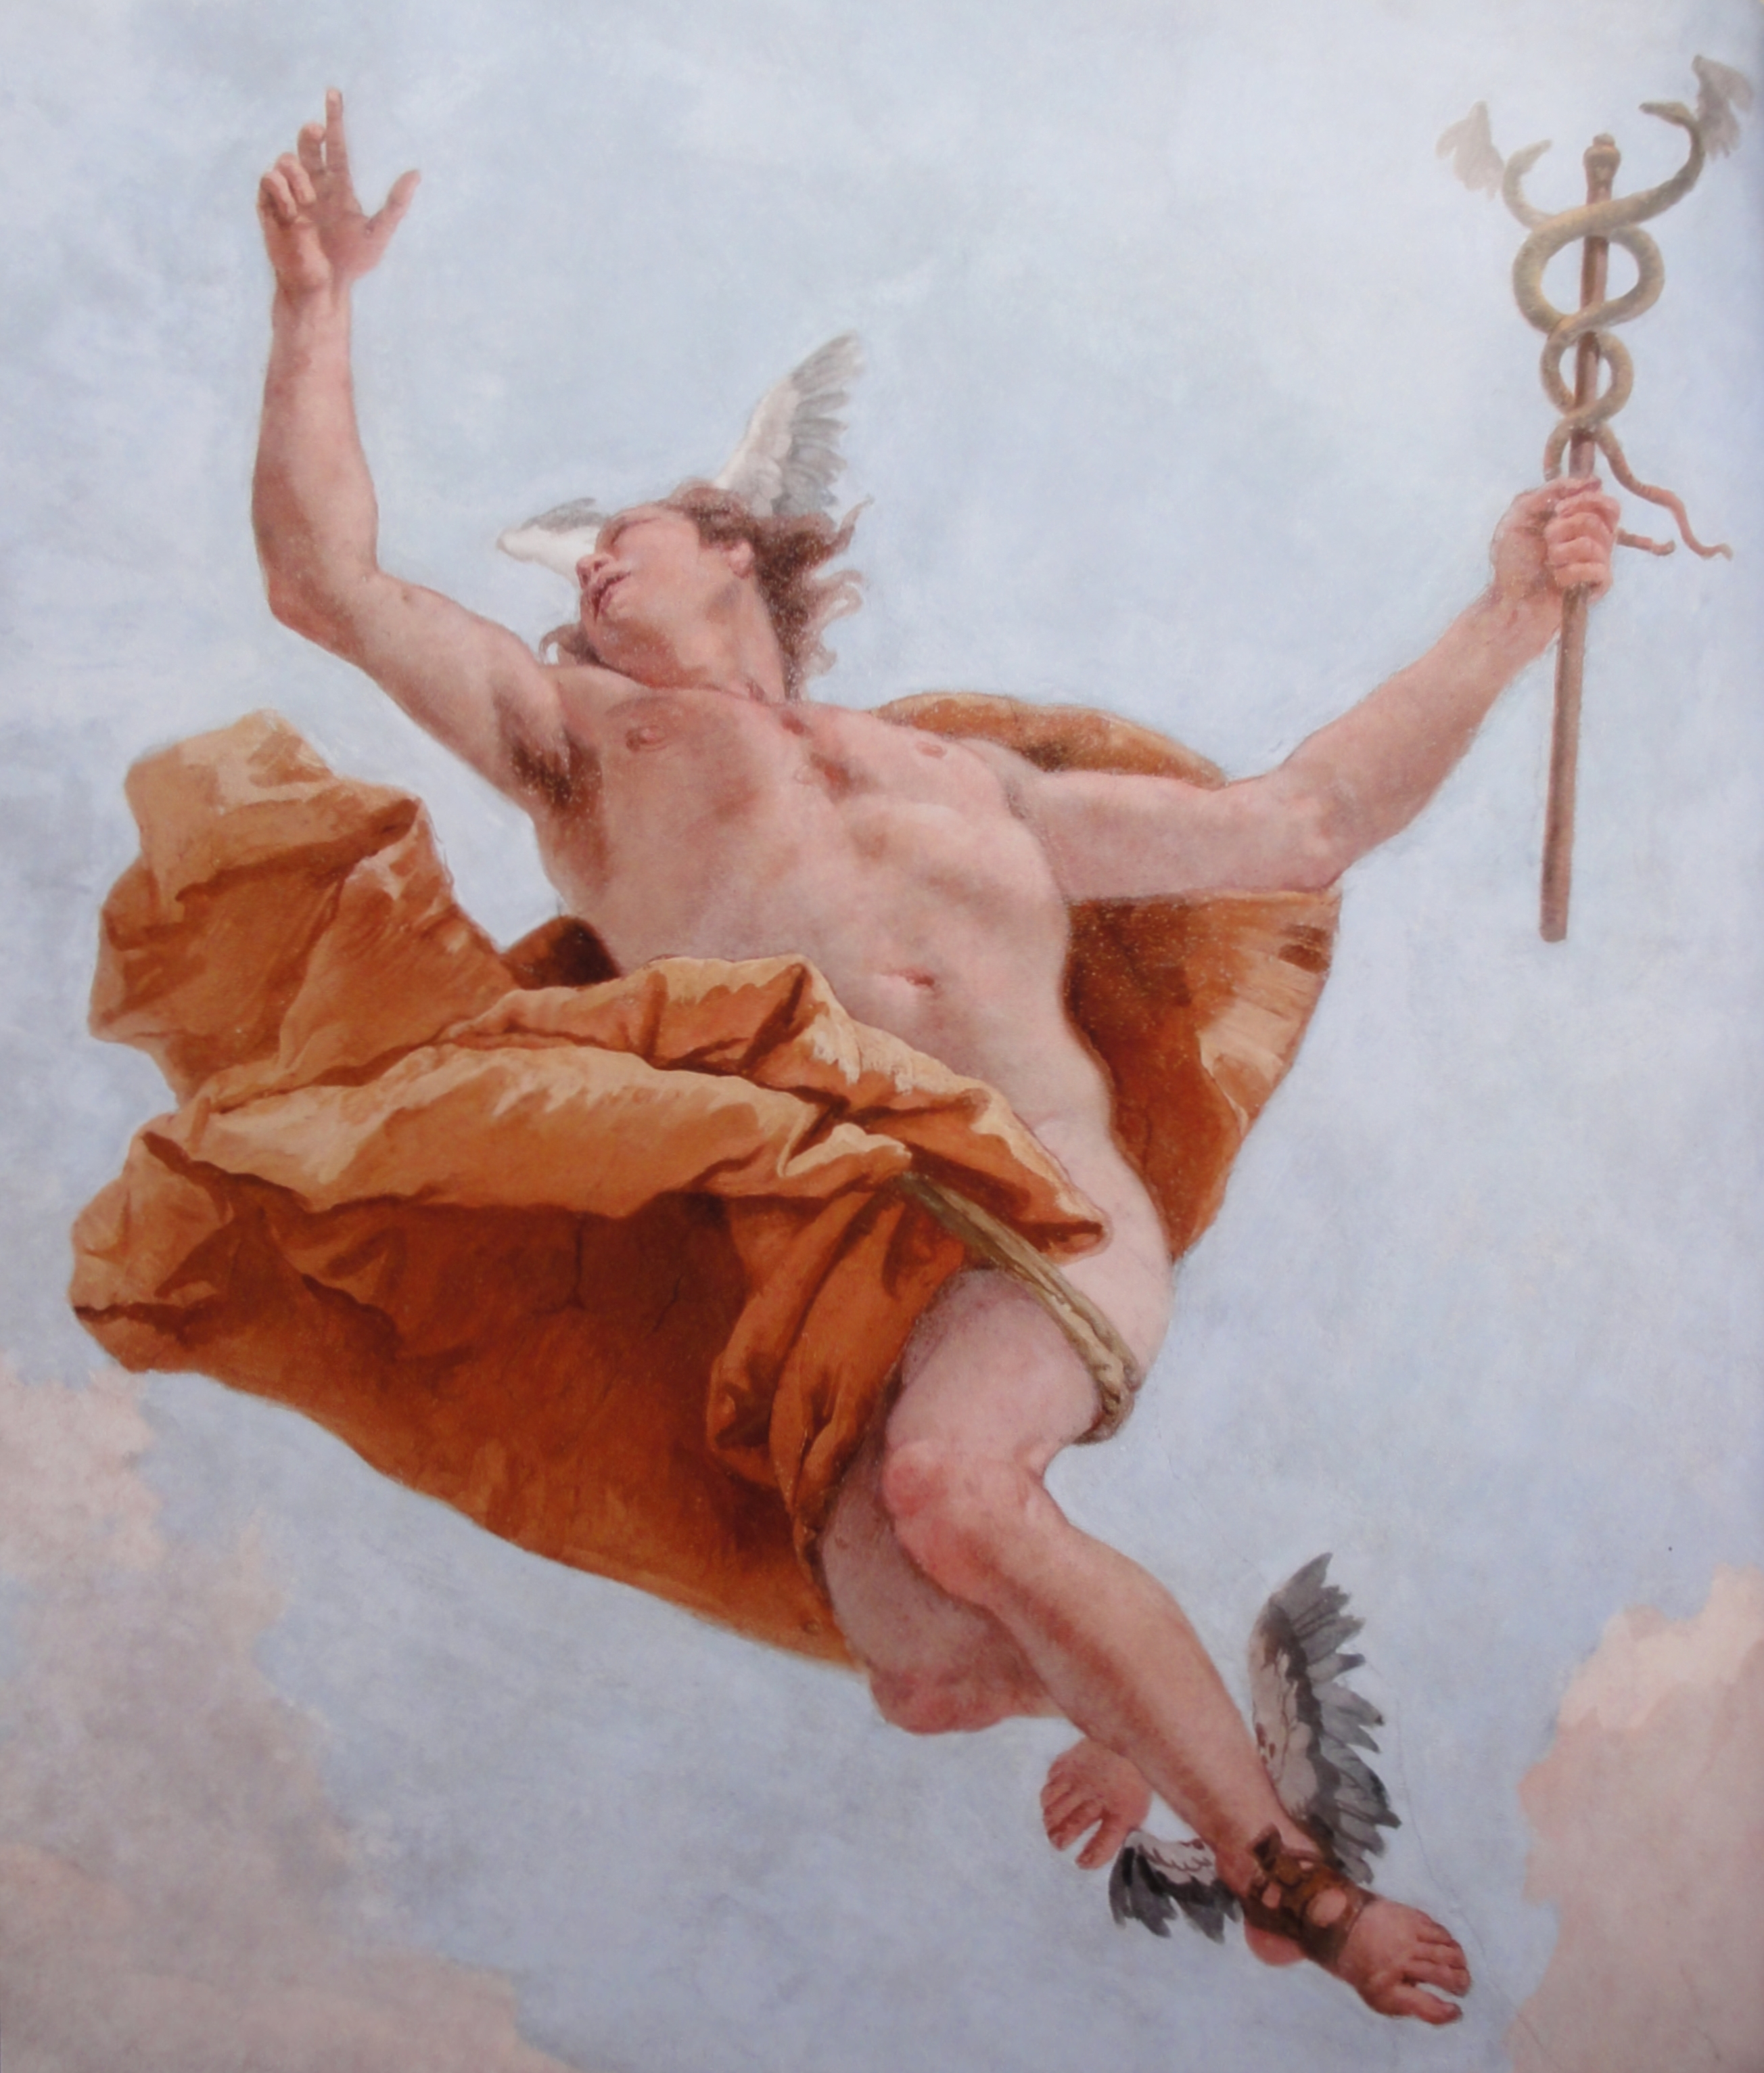 a description of zeus in greek mythology in constant battles with the godly virtues In greek mythology, prometheus (/ p r ə ˈ m iː θ iː ə s / greek: προμηθεύς, pronounced [promɛːtʰeús], meaning forethought) is a titan, culture hero, and trickster figure who is credited with the creation of man from clay, and who defies the gods by stealing fire and giving it to humanity, an act that enabled progress and civilization.